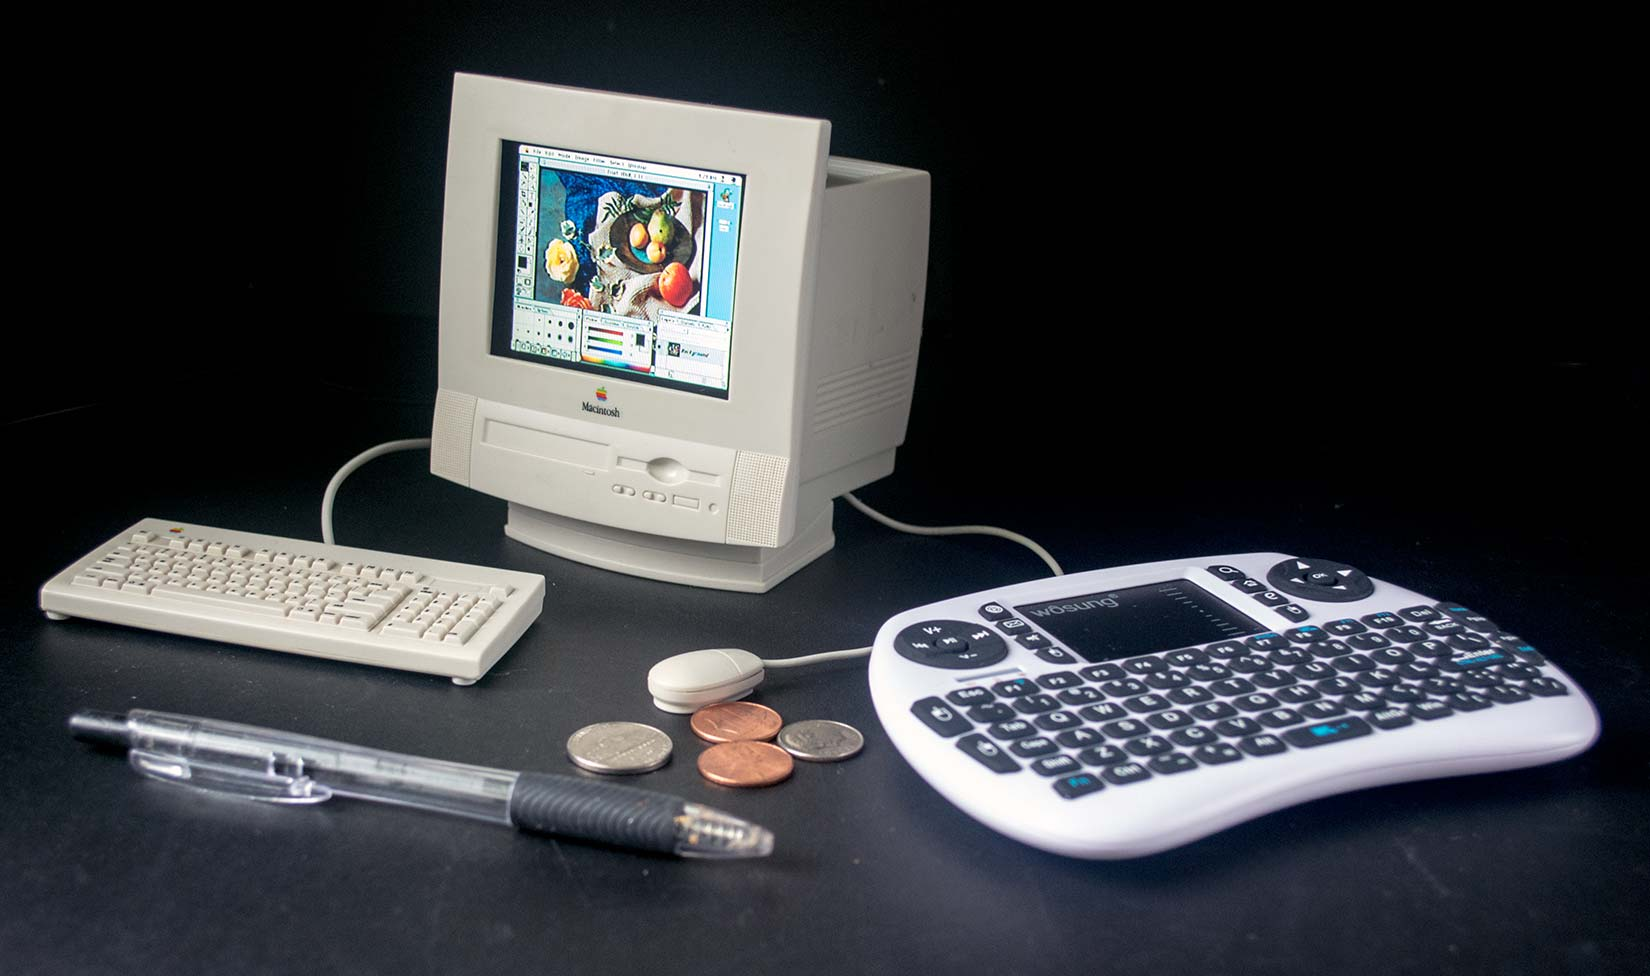 This tiny toy Mac runs Photoshop for work on tiny pictures.